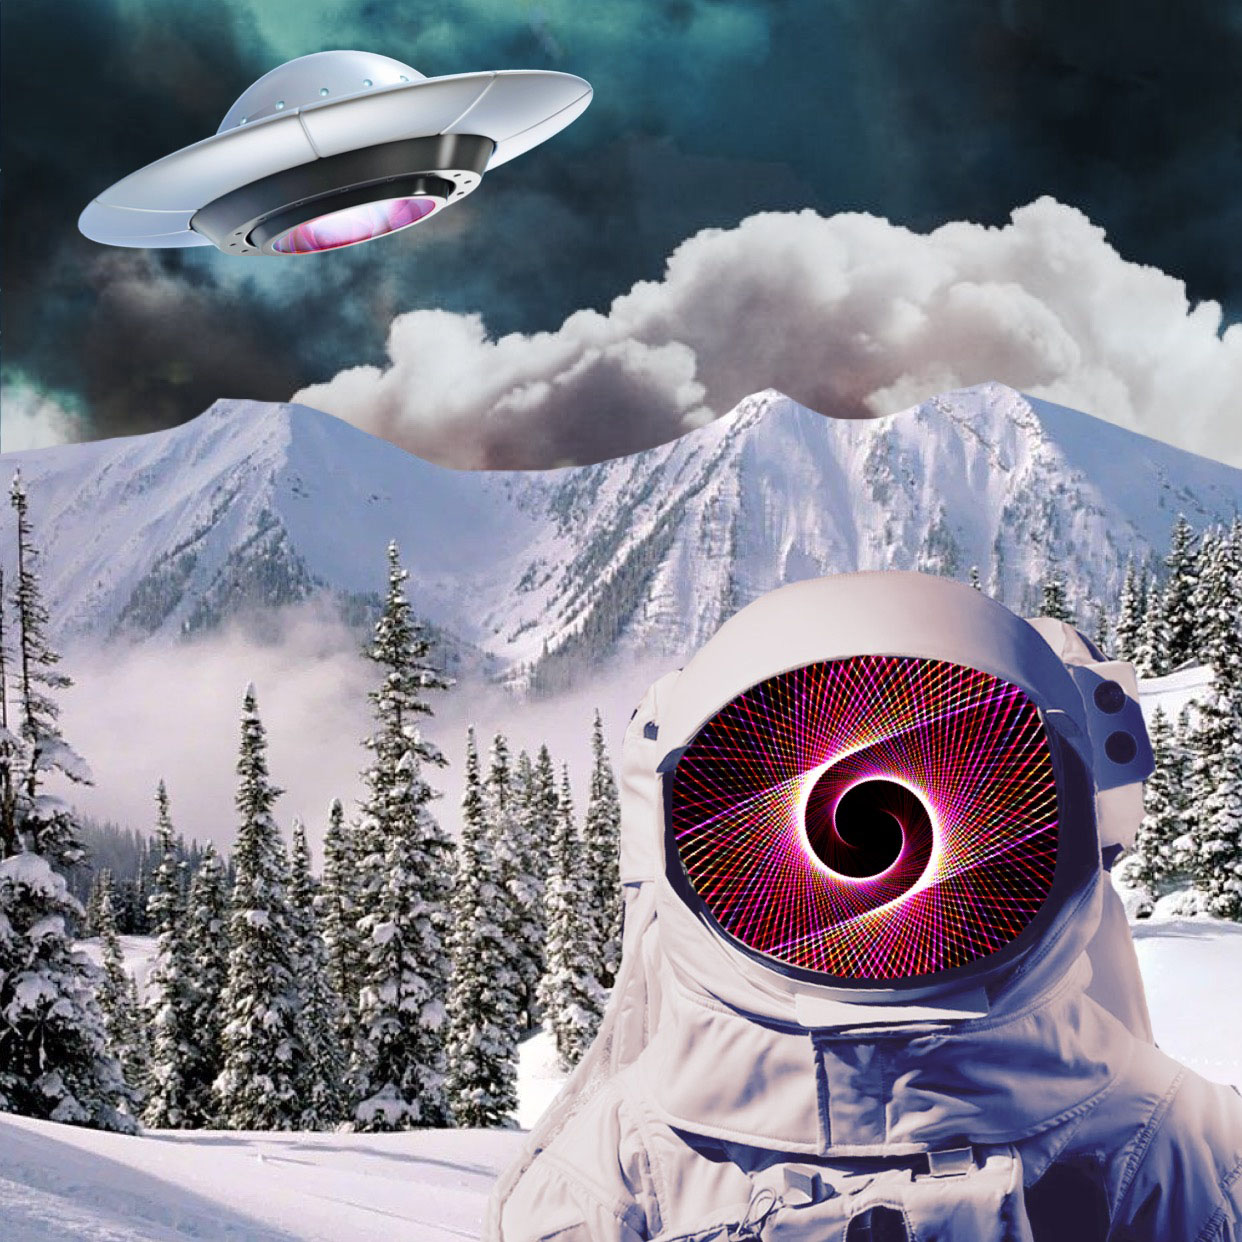 cyclops digital astronaut meets ufo